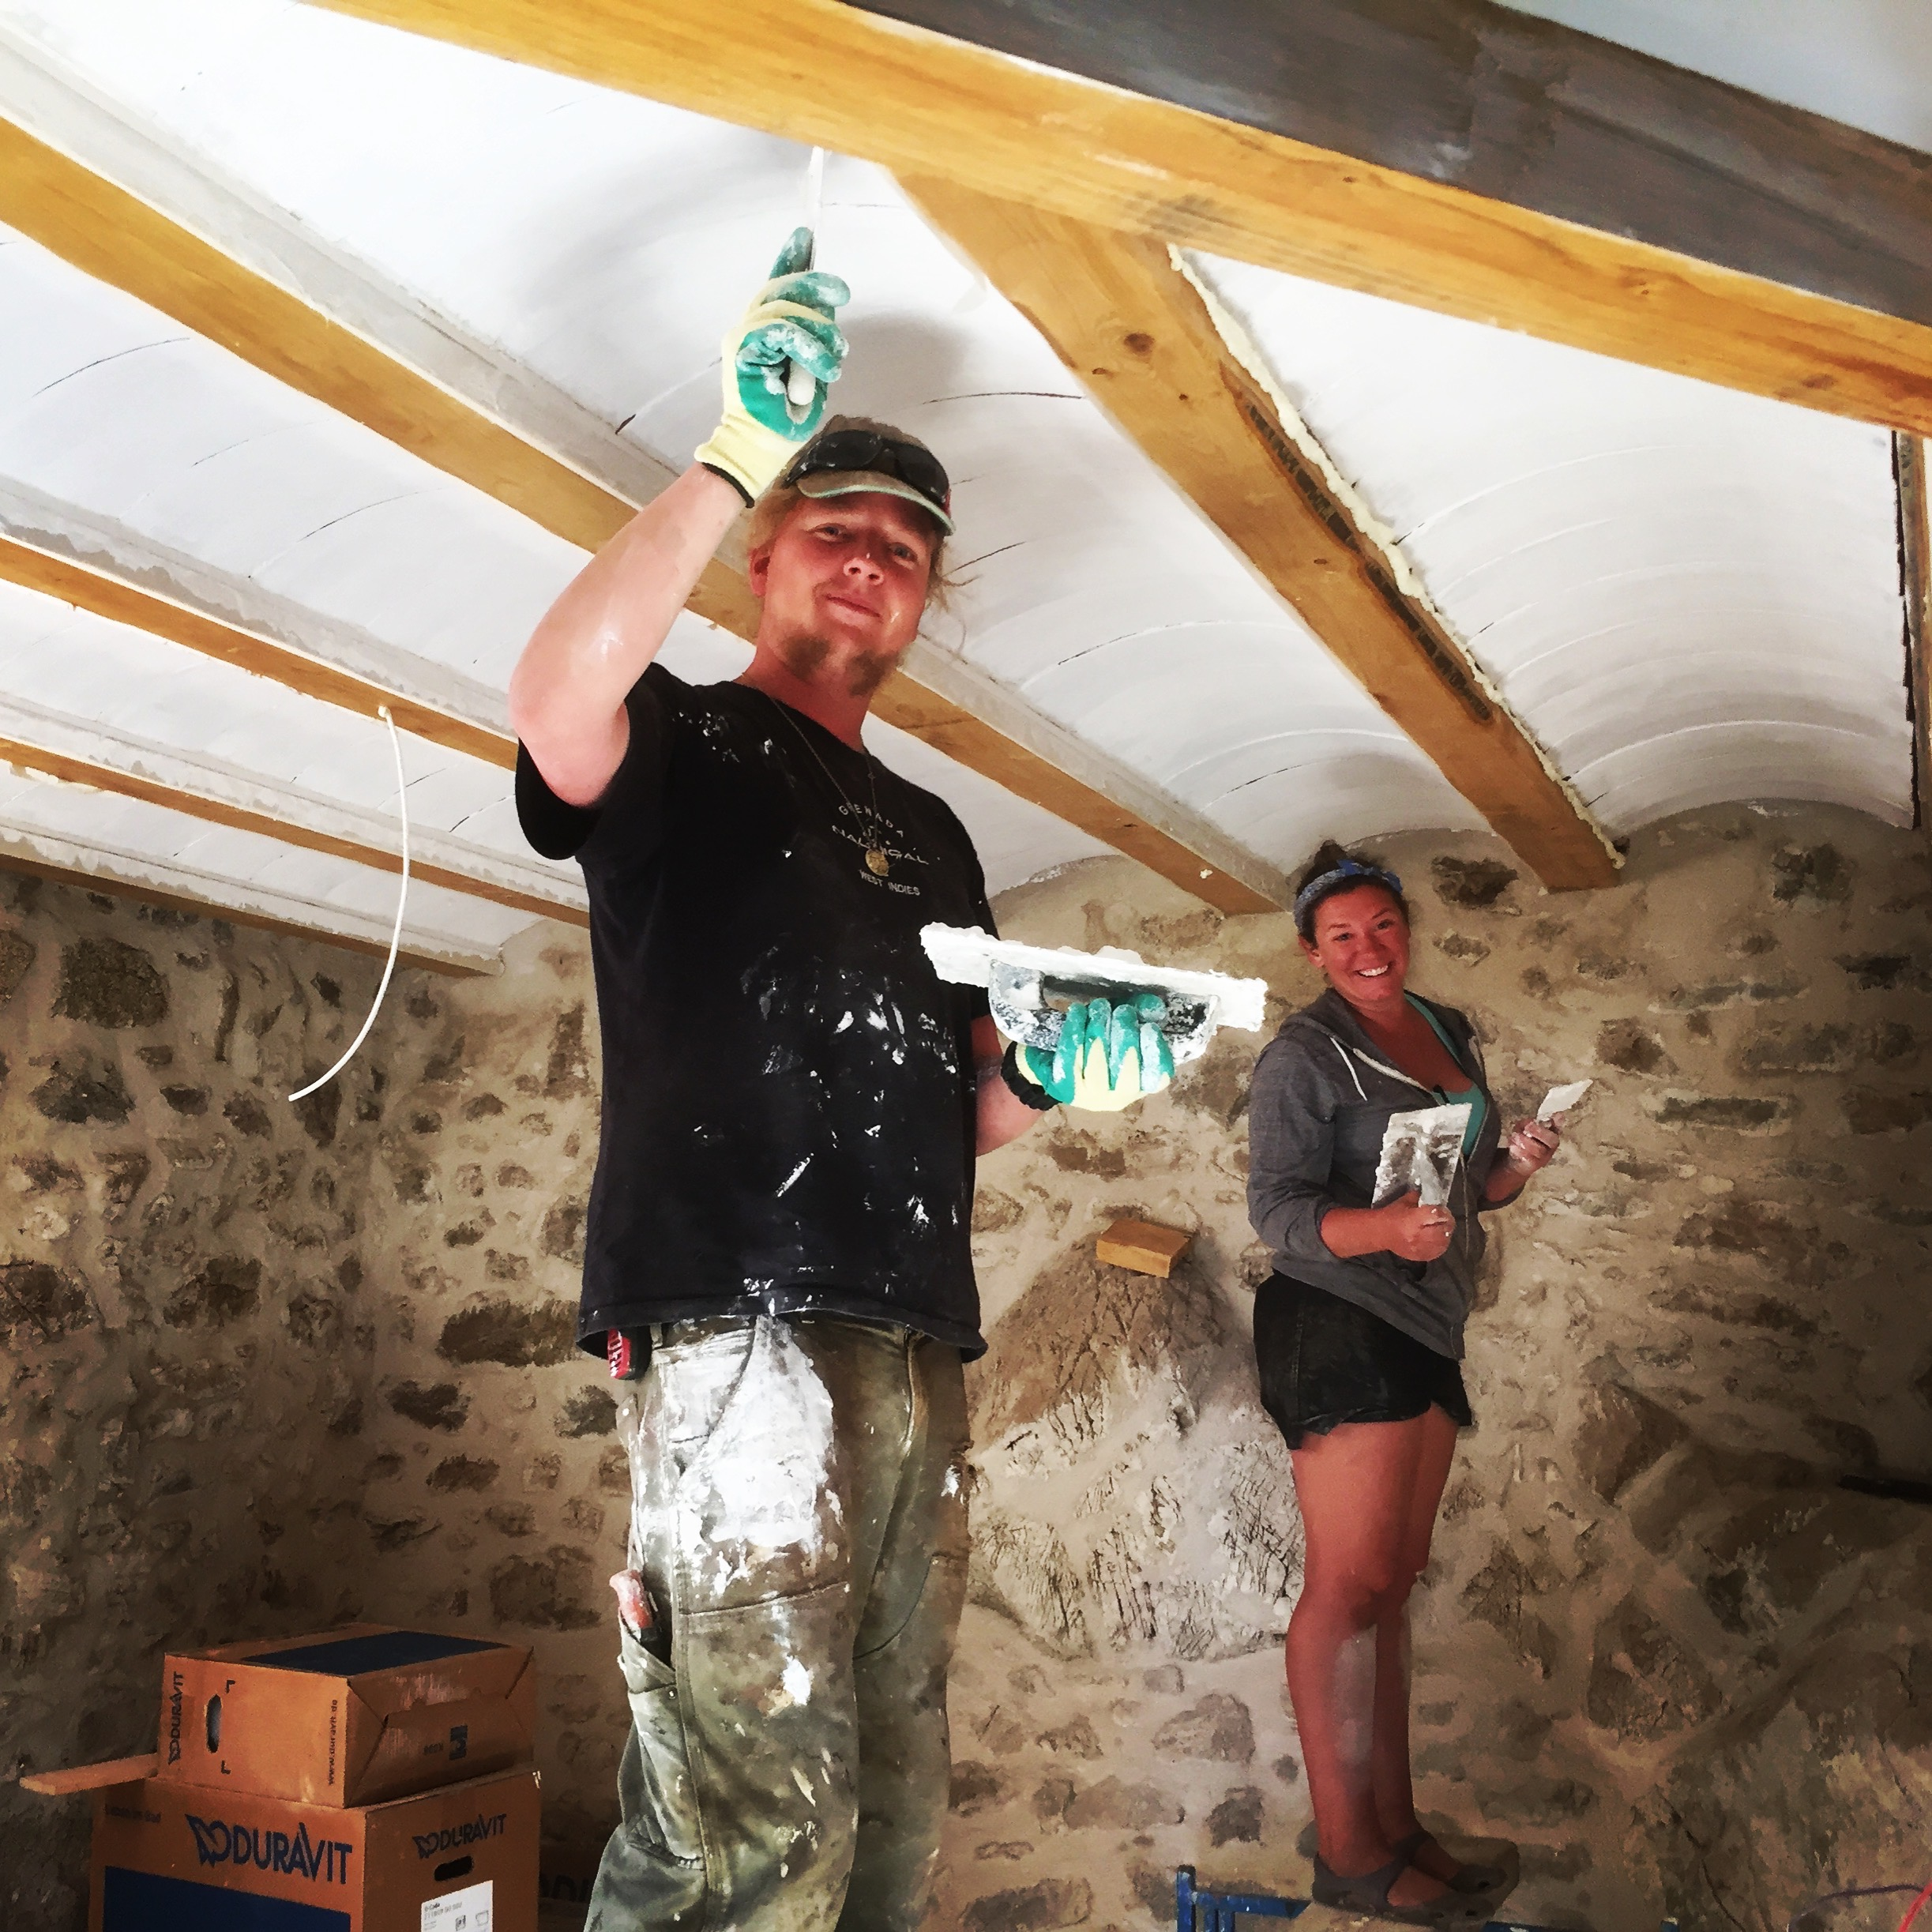 Luka and Dani painting the ceiling after fitting the capping beams